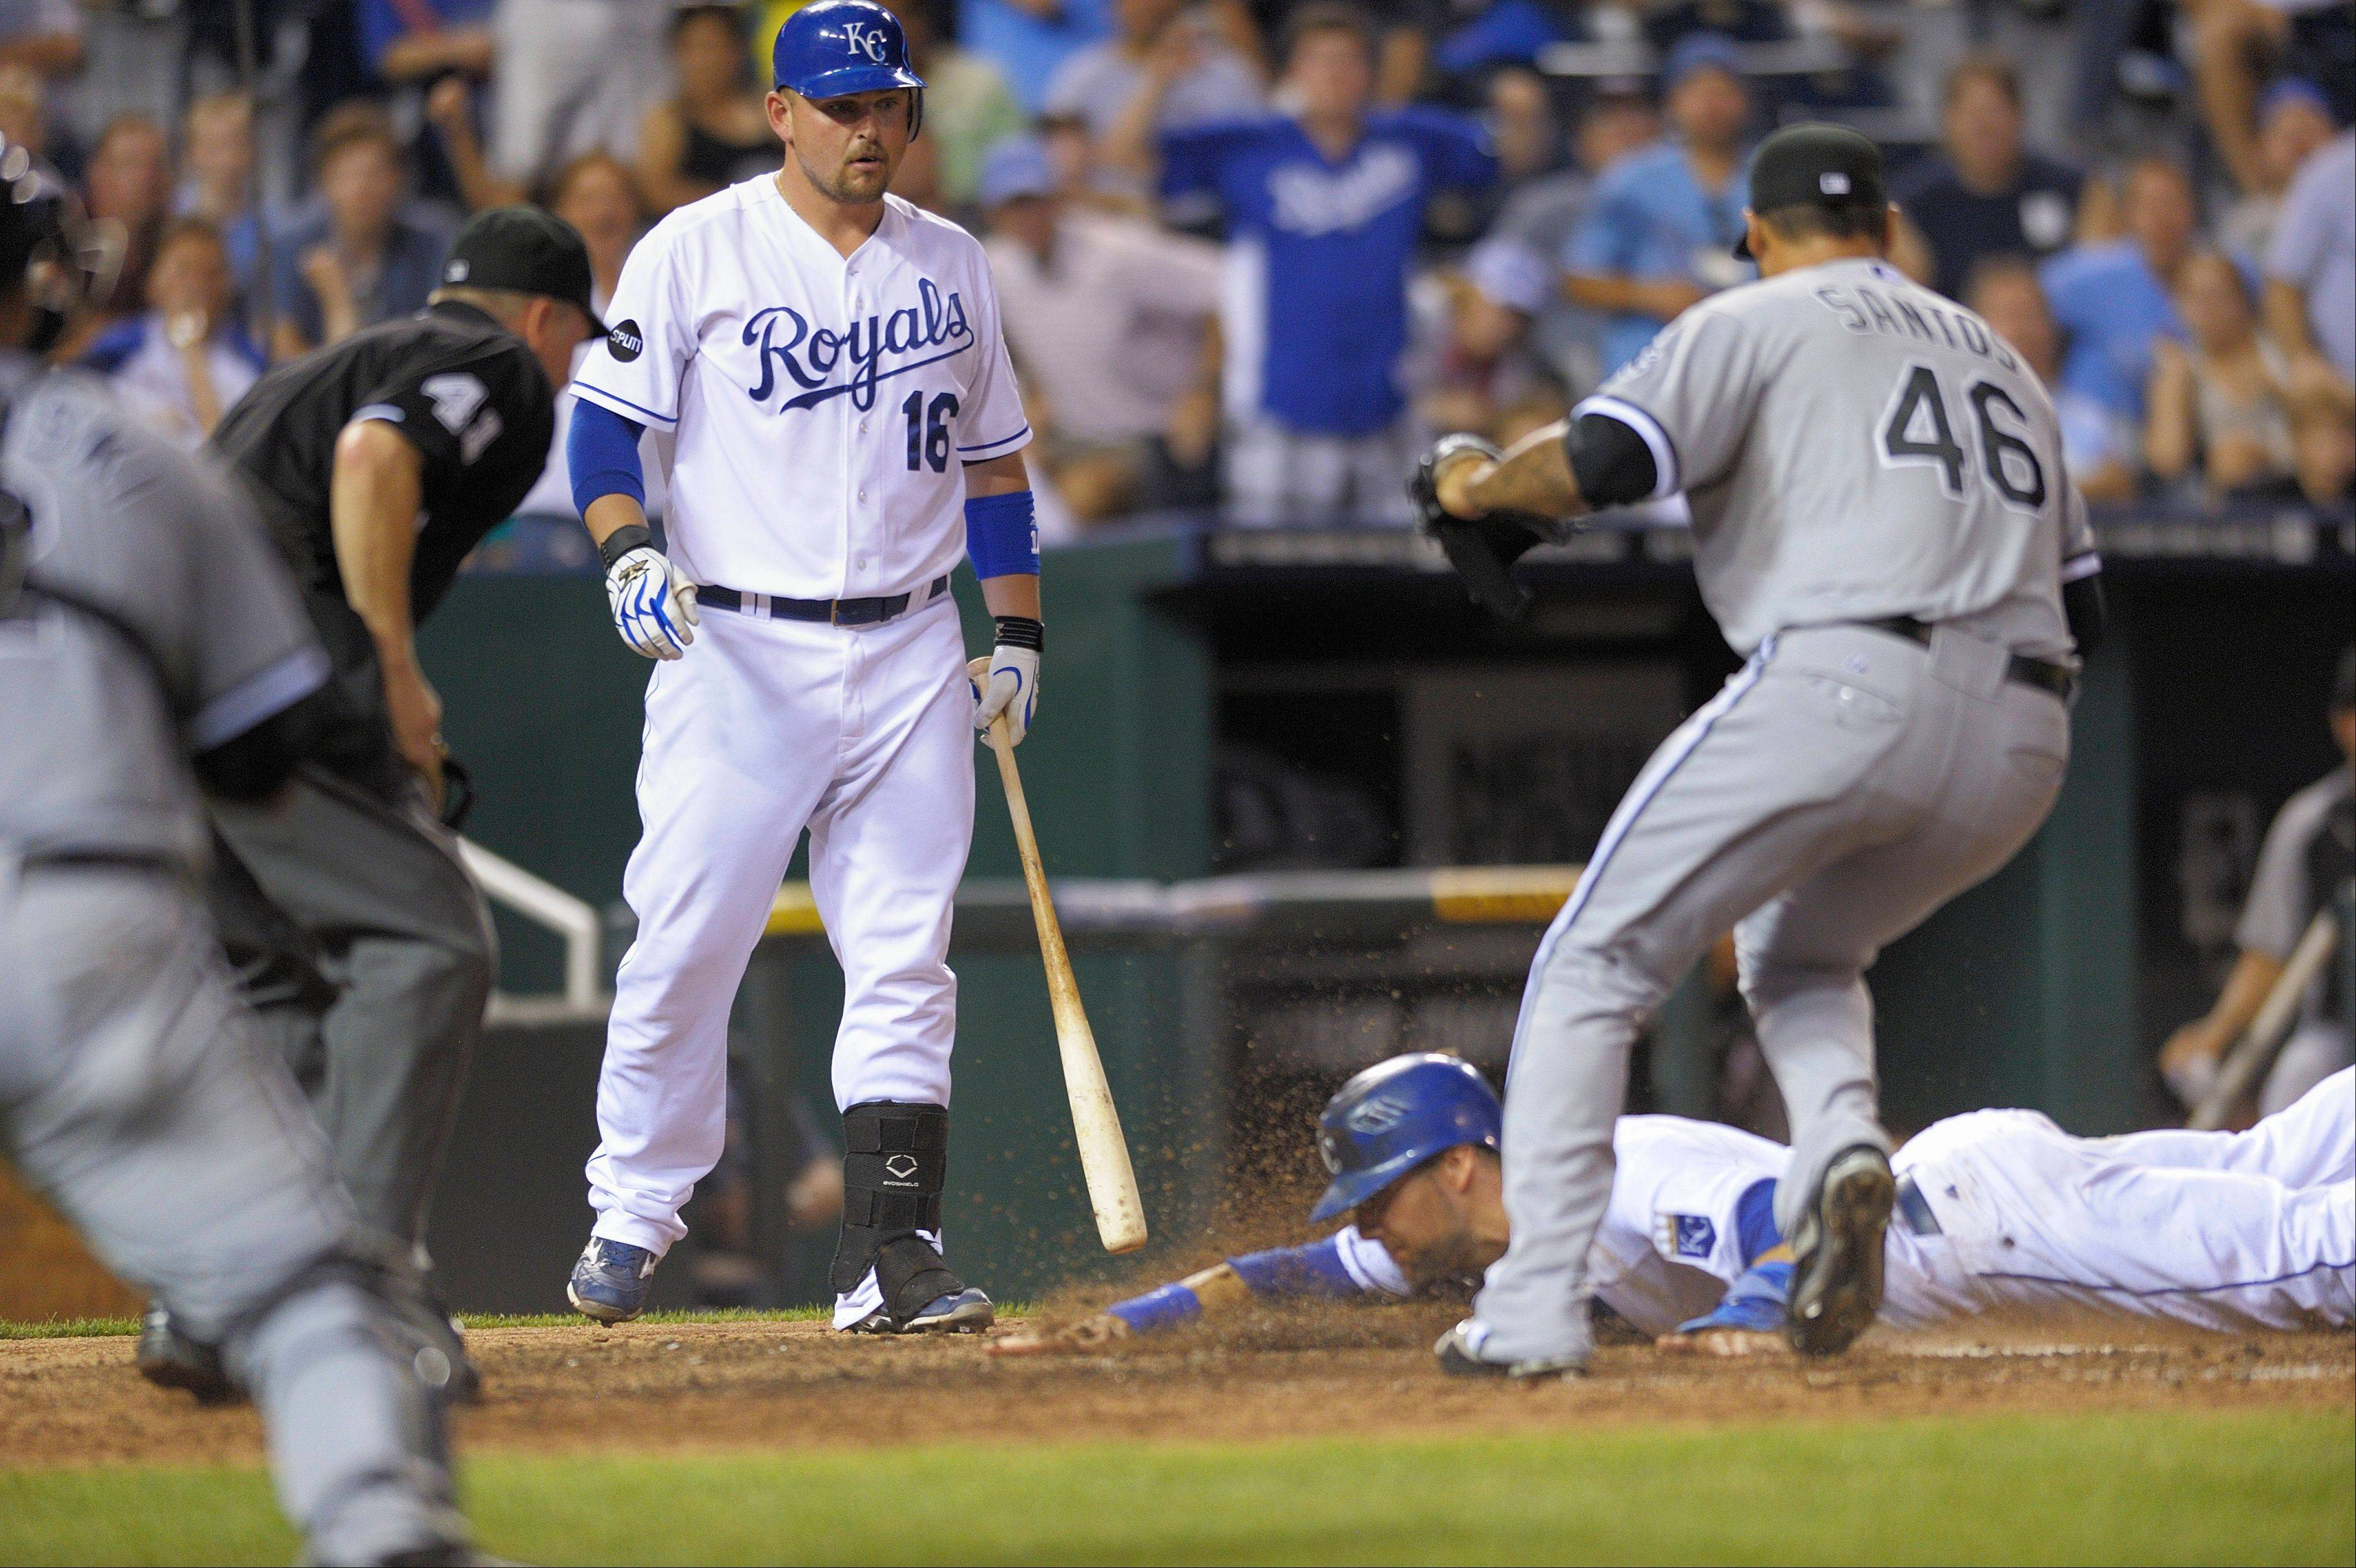 The Royals' Alex Gordon, bottom right, steals home on a wild pitch from White Sox relief pitcher Sergio Santos to Billy Butler with umpire Jerry Meals watching with two out in the bottom of the 11th inning to win 2-1 Wednesday night.